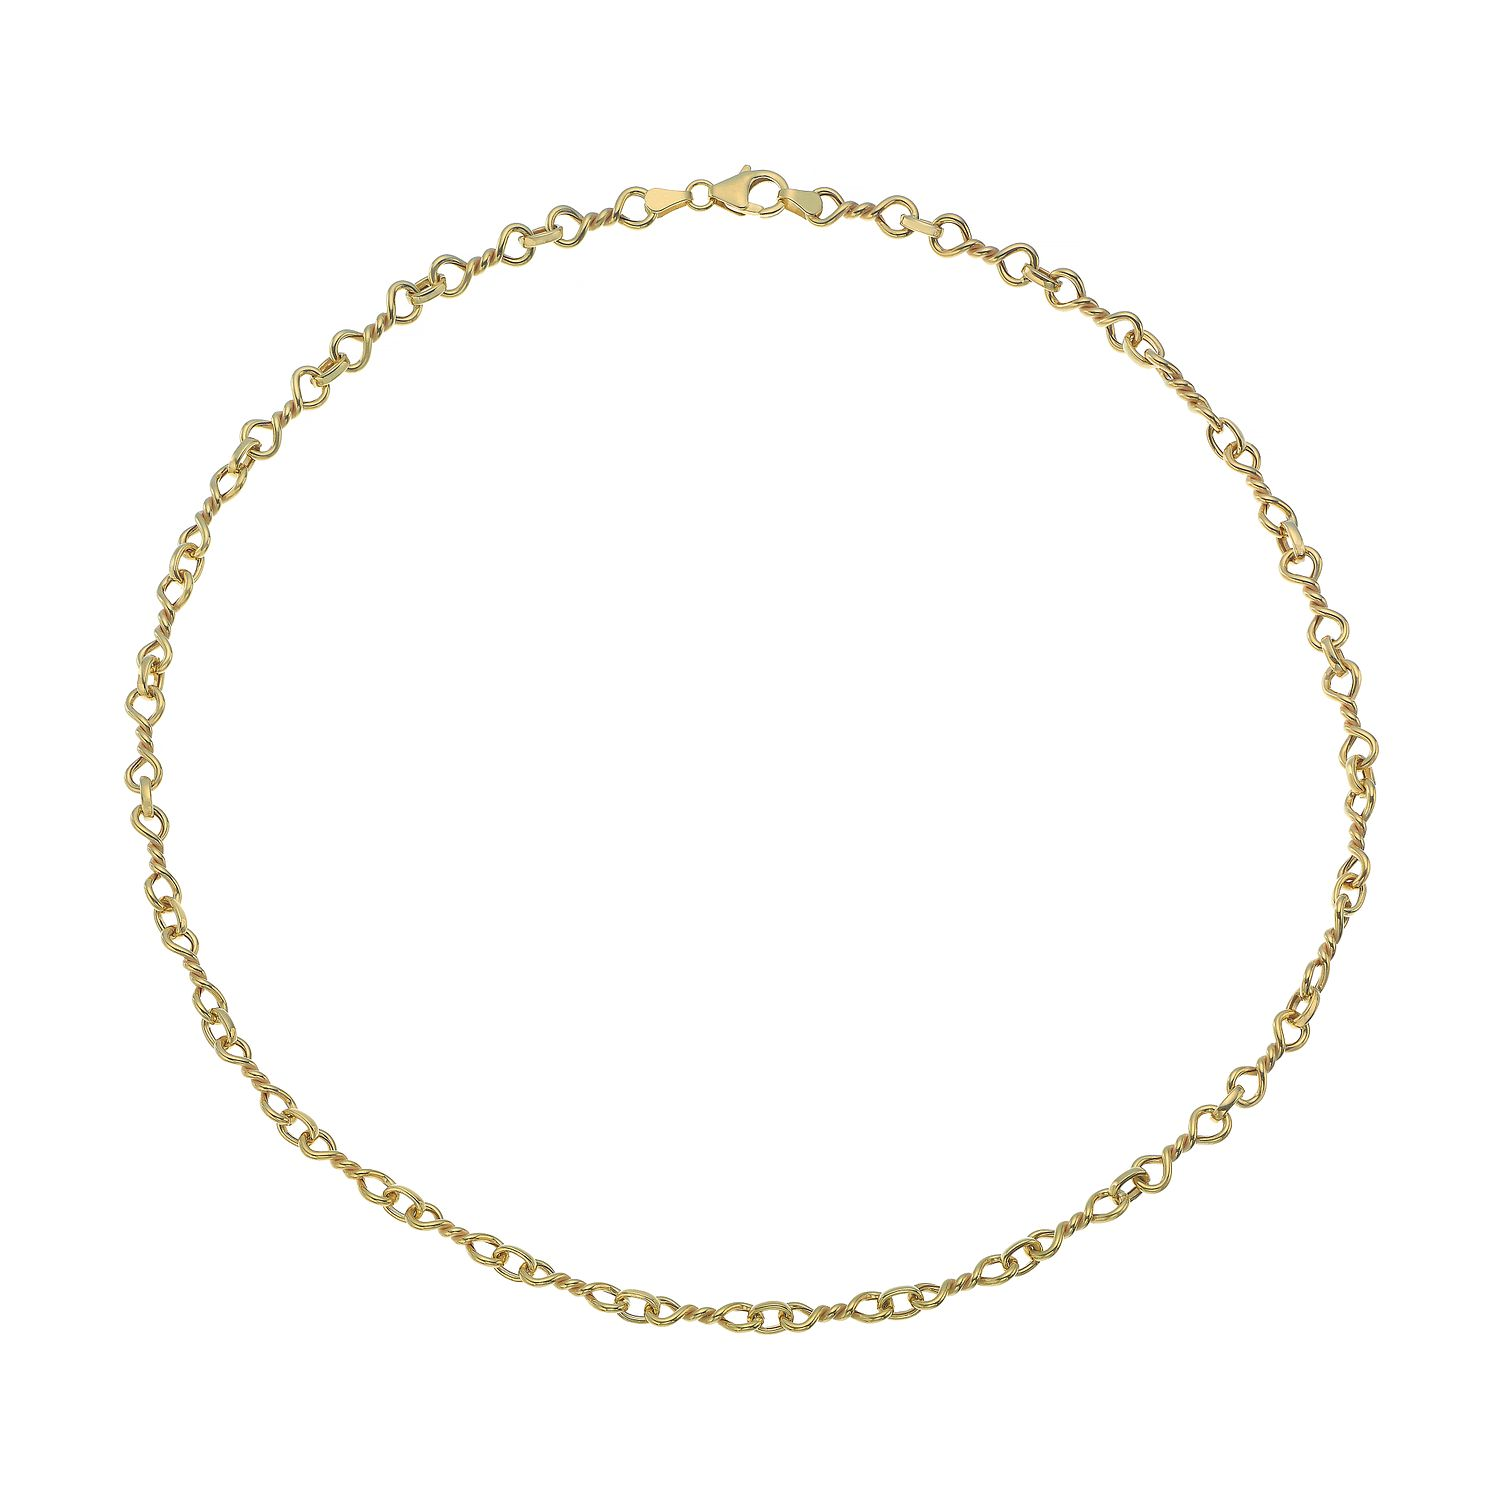 9ct Yellow Gold Twist Link Chain Necklace - Product number 4672283